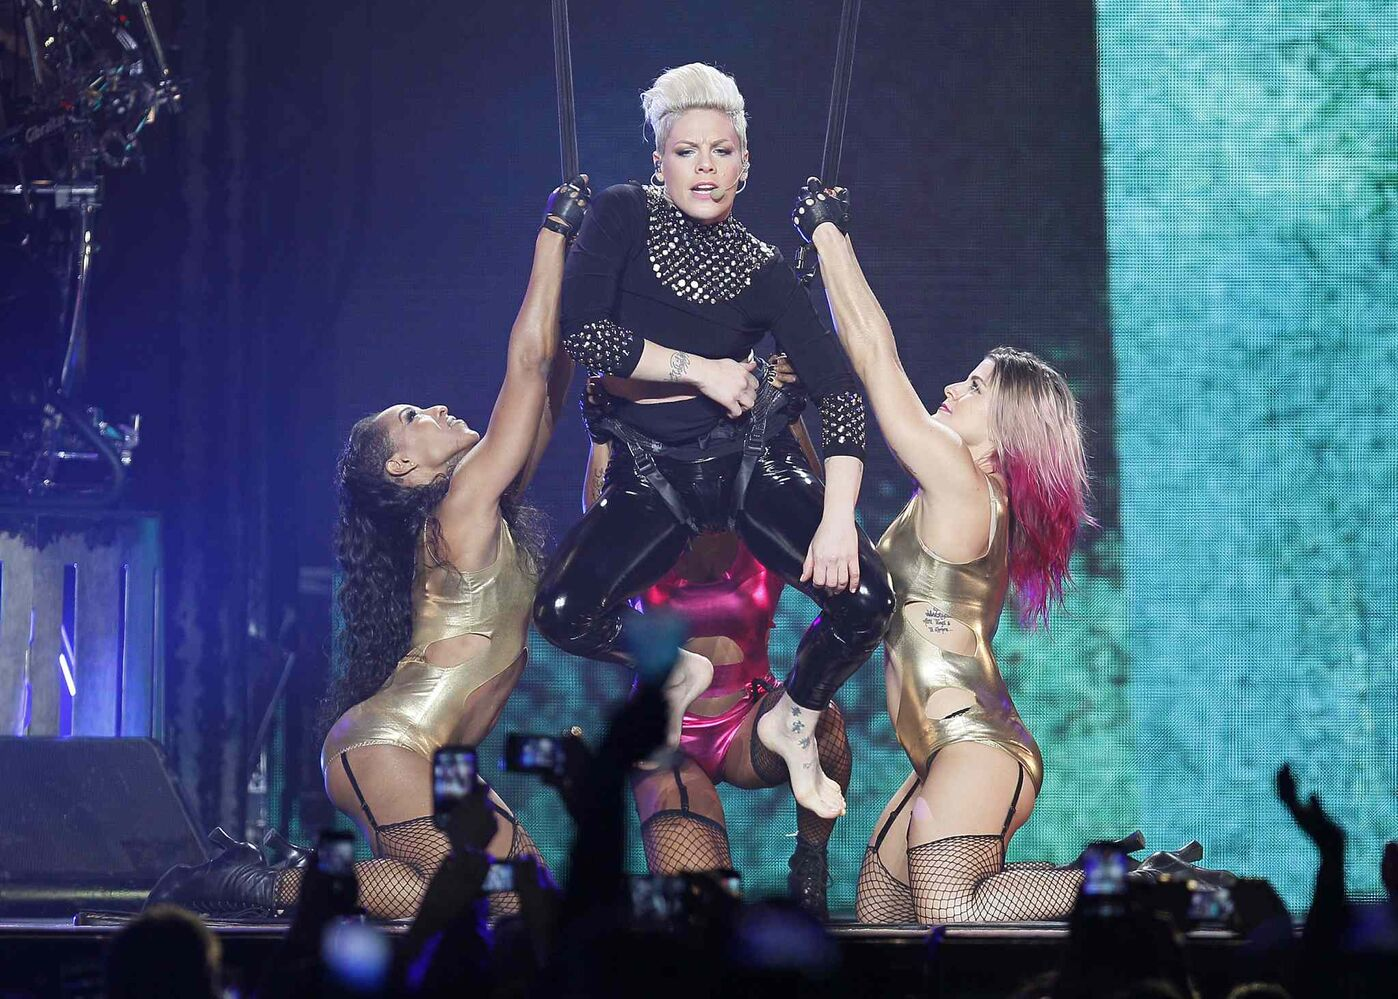 Pink performs at MTS Centre in Winnipeg Tuesday, January 14. (John Woods / Winnipeg Free Press)